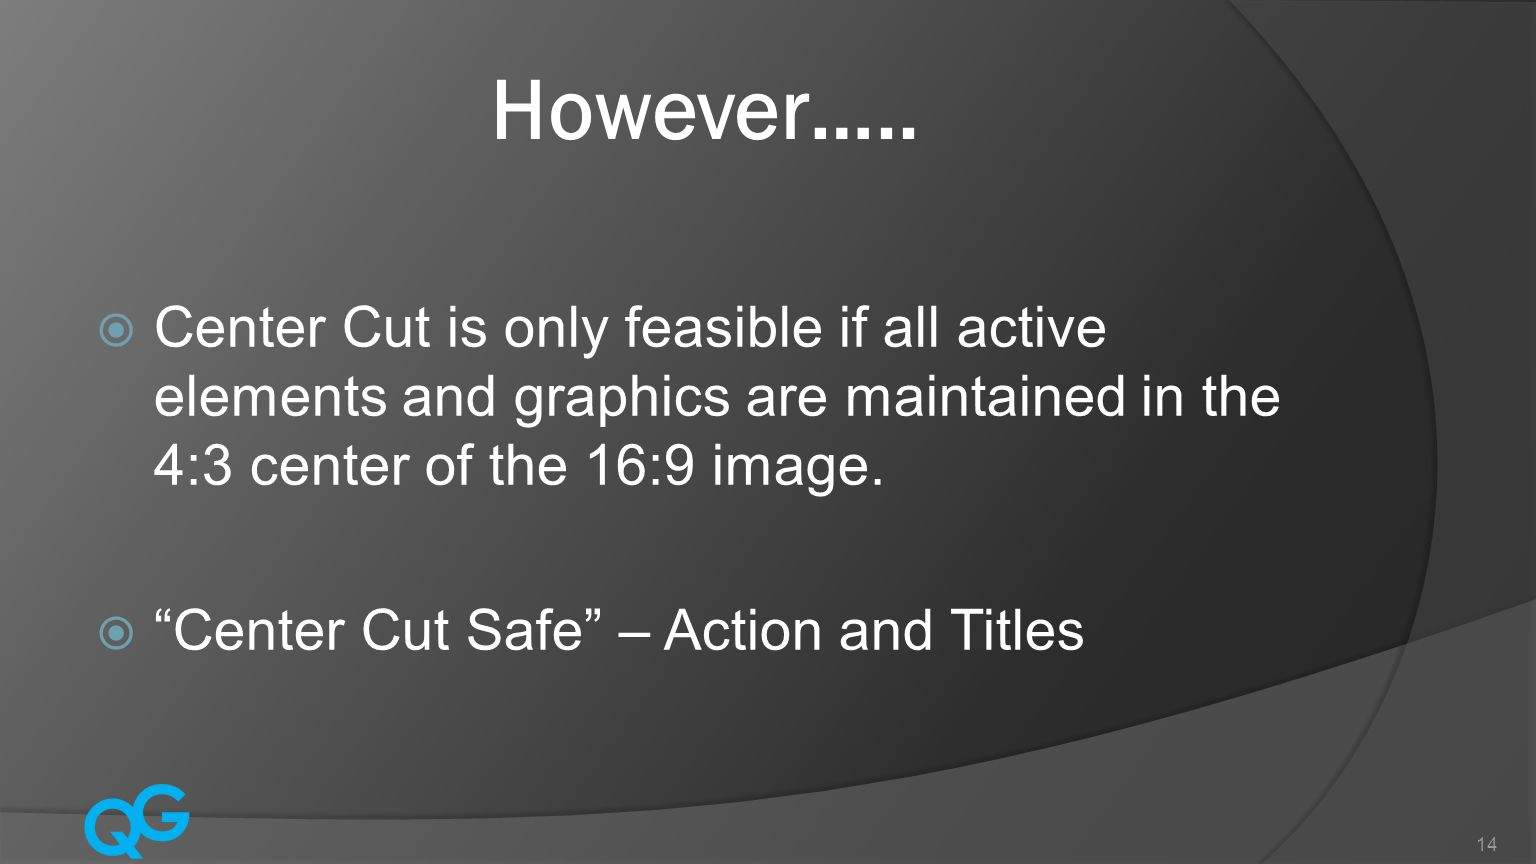 However….. Center Cut is only feasible if all active elements and graphics are maintained in the 4:3 center of the 16:9 image.